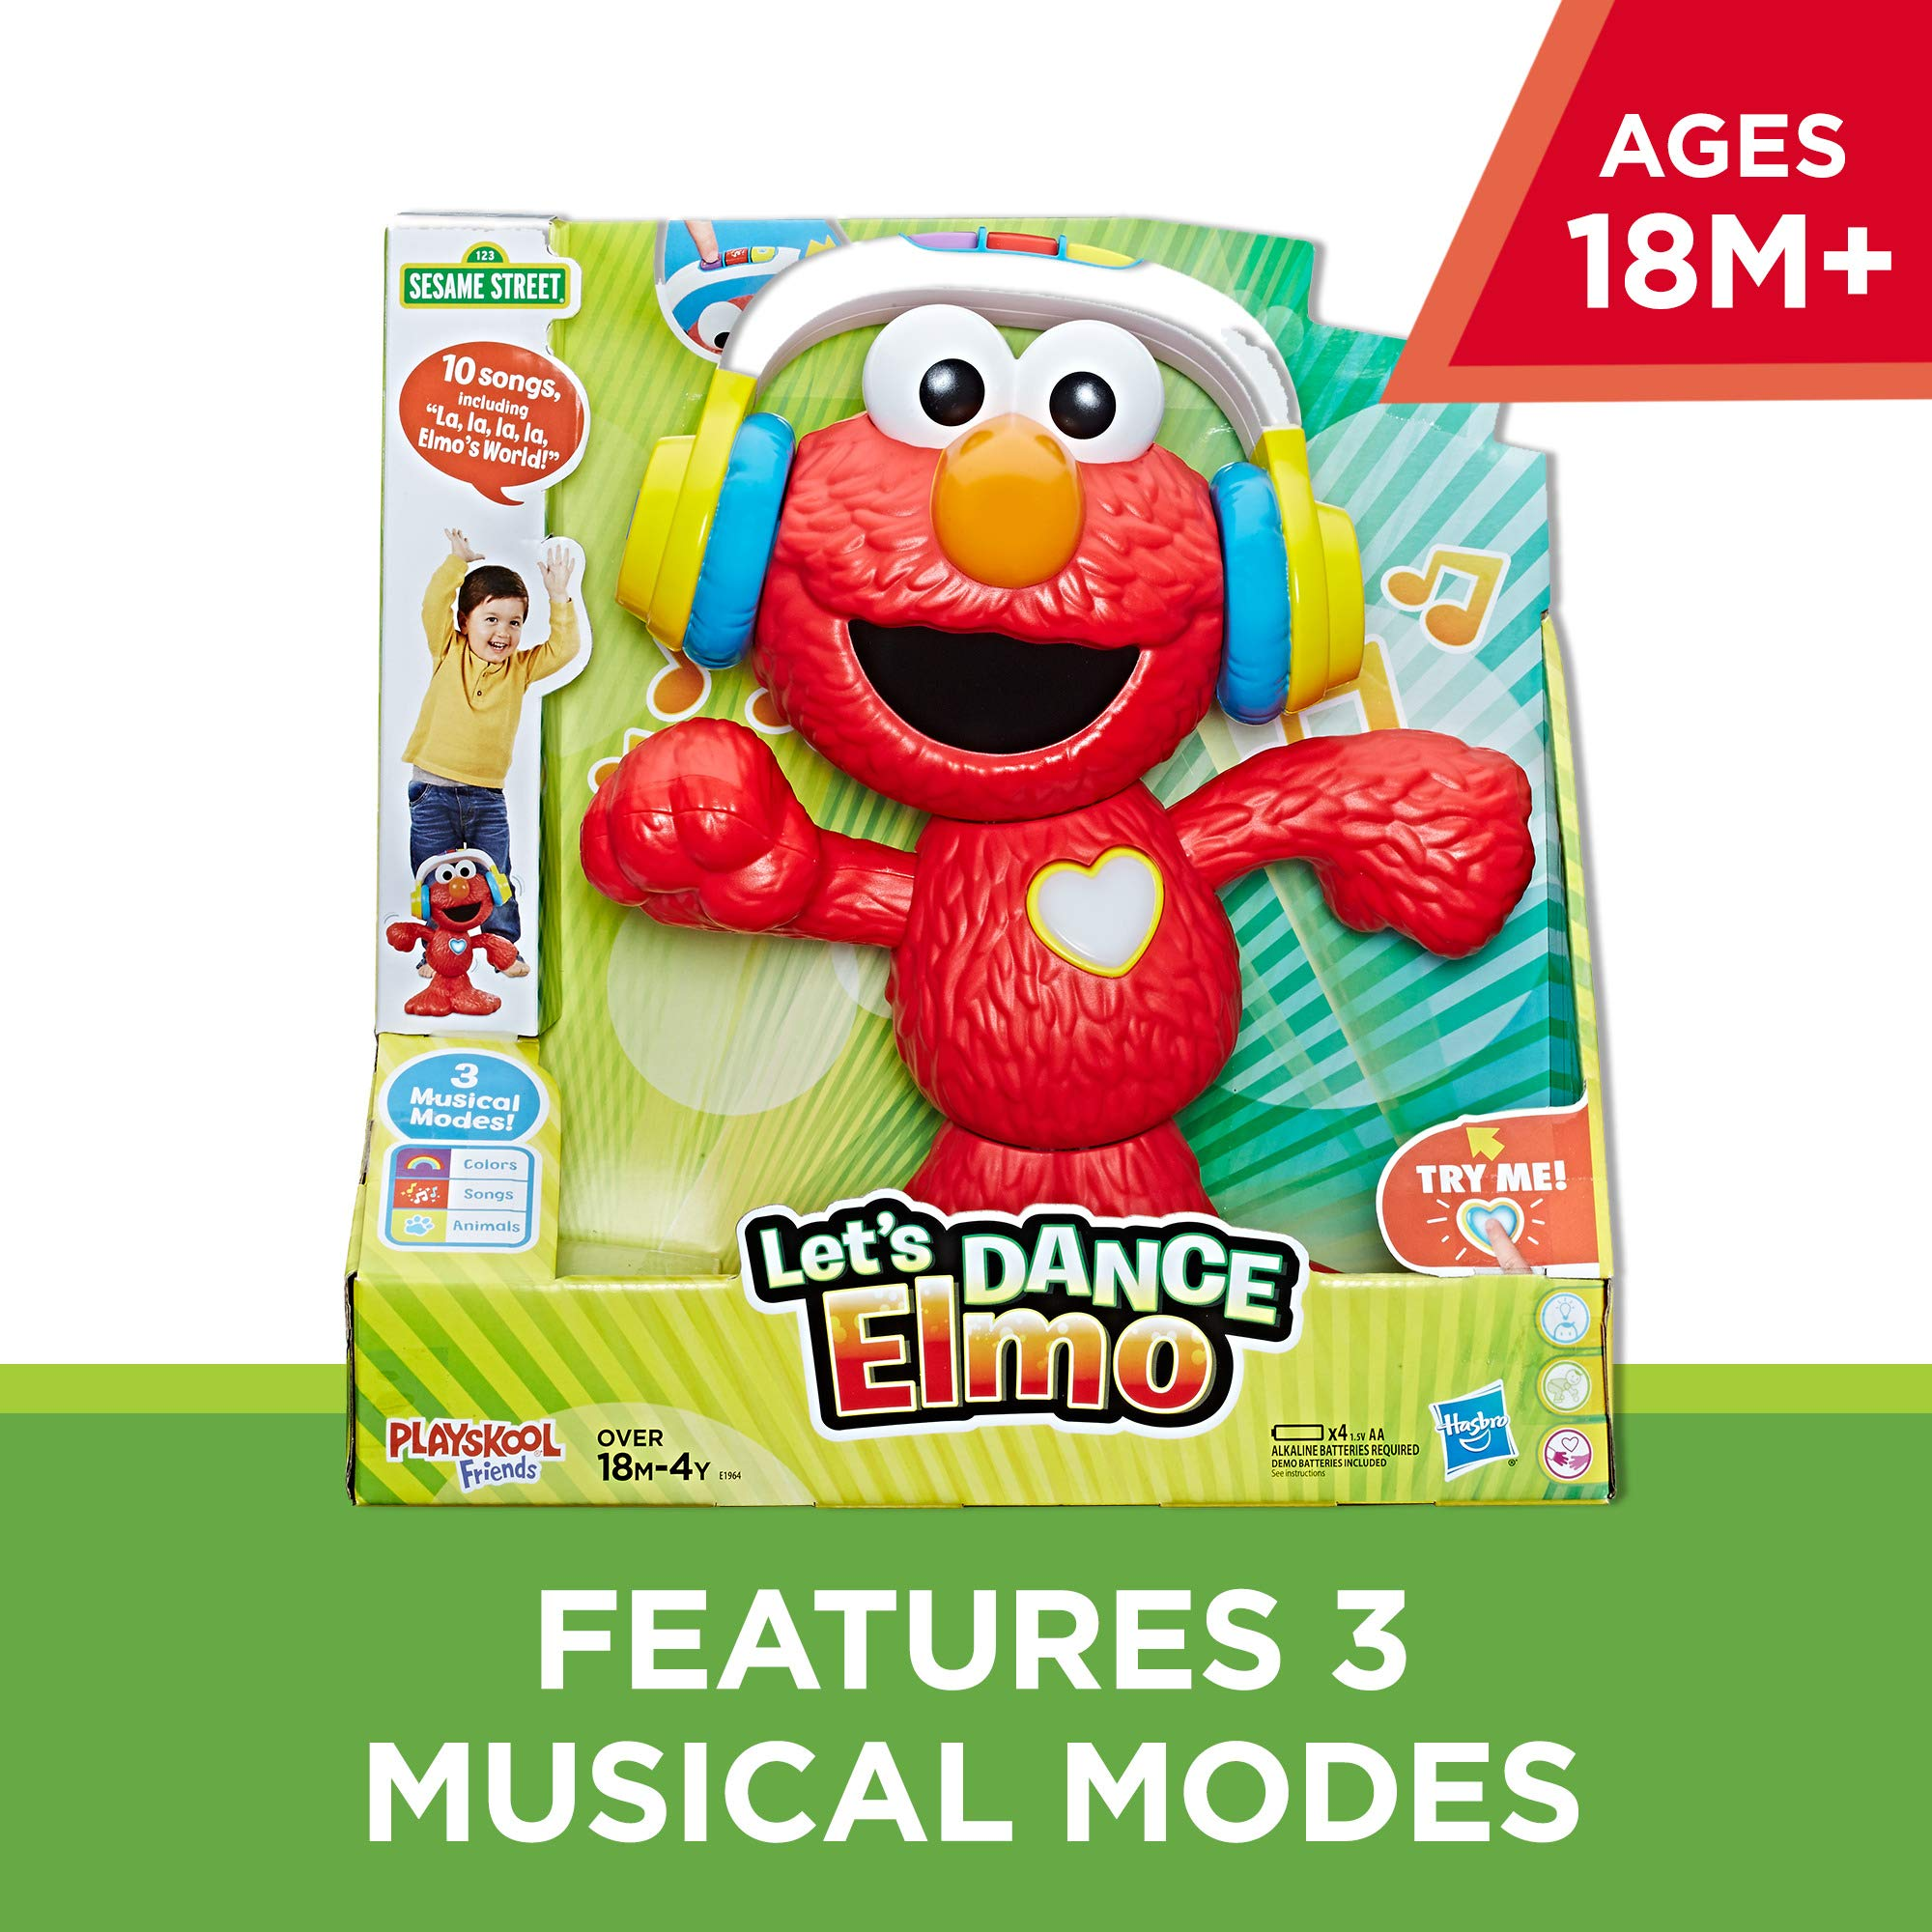 Sesame Street Let's Dance Elmo: 12-inch Elmo Toy that Sings and Dances, With 3 Musical Modes, Sesame Street Toy for Kids Ages 18 Months and Up by Sesame Street (Image #2)